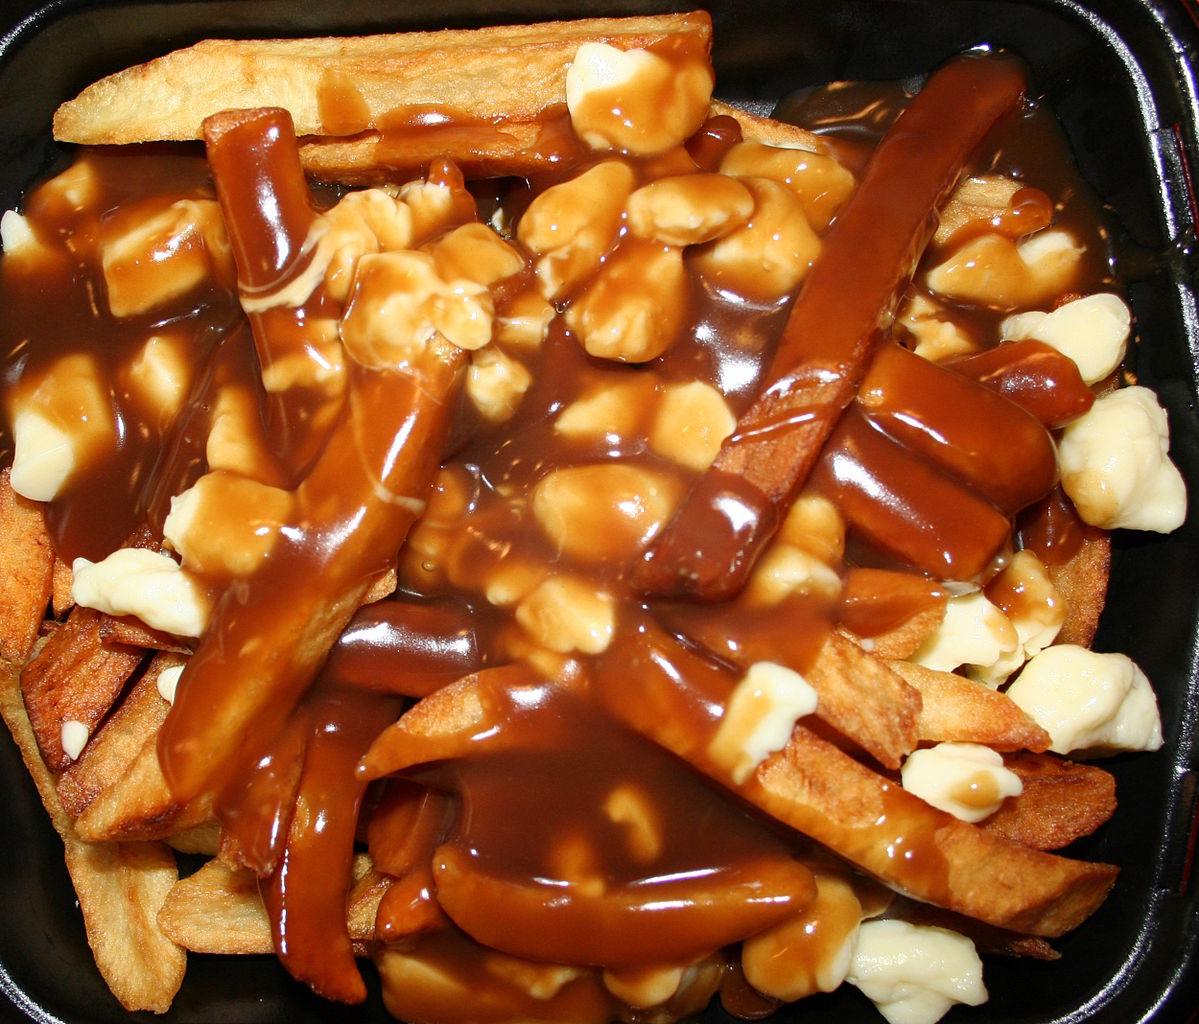 Poutine Sauce Recipe for French Fries - Food Republic |Canned Poutine Sauce